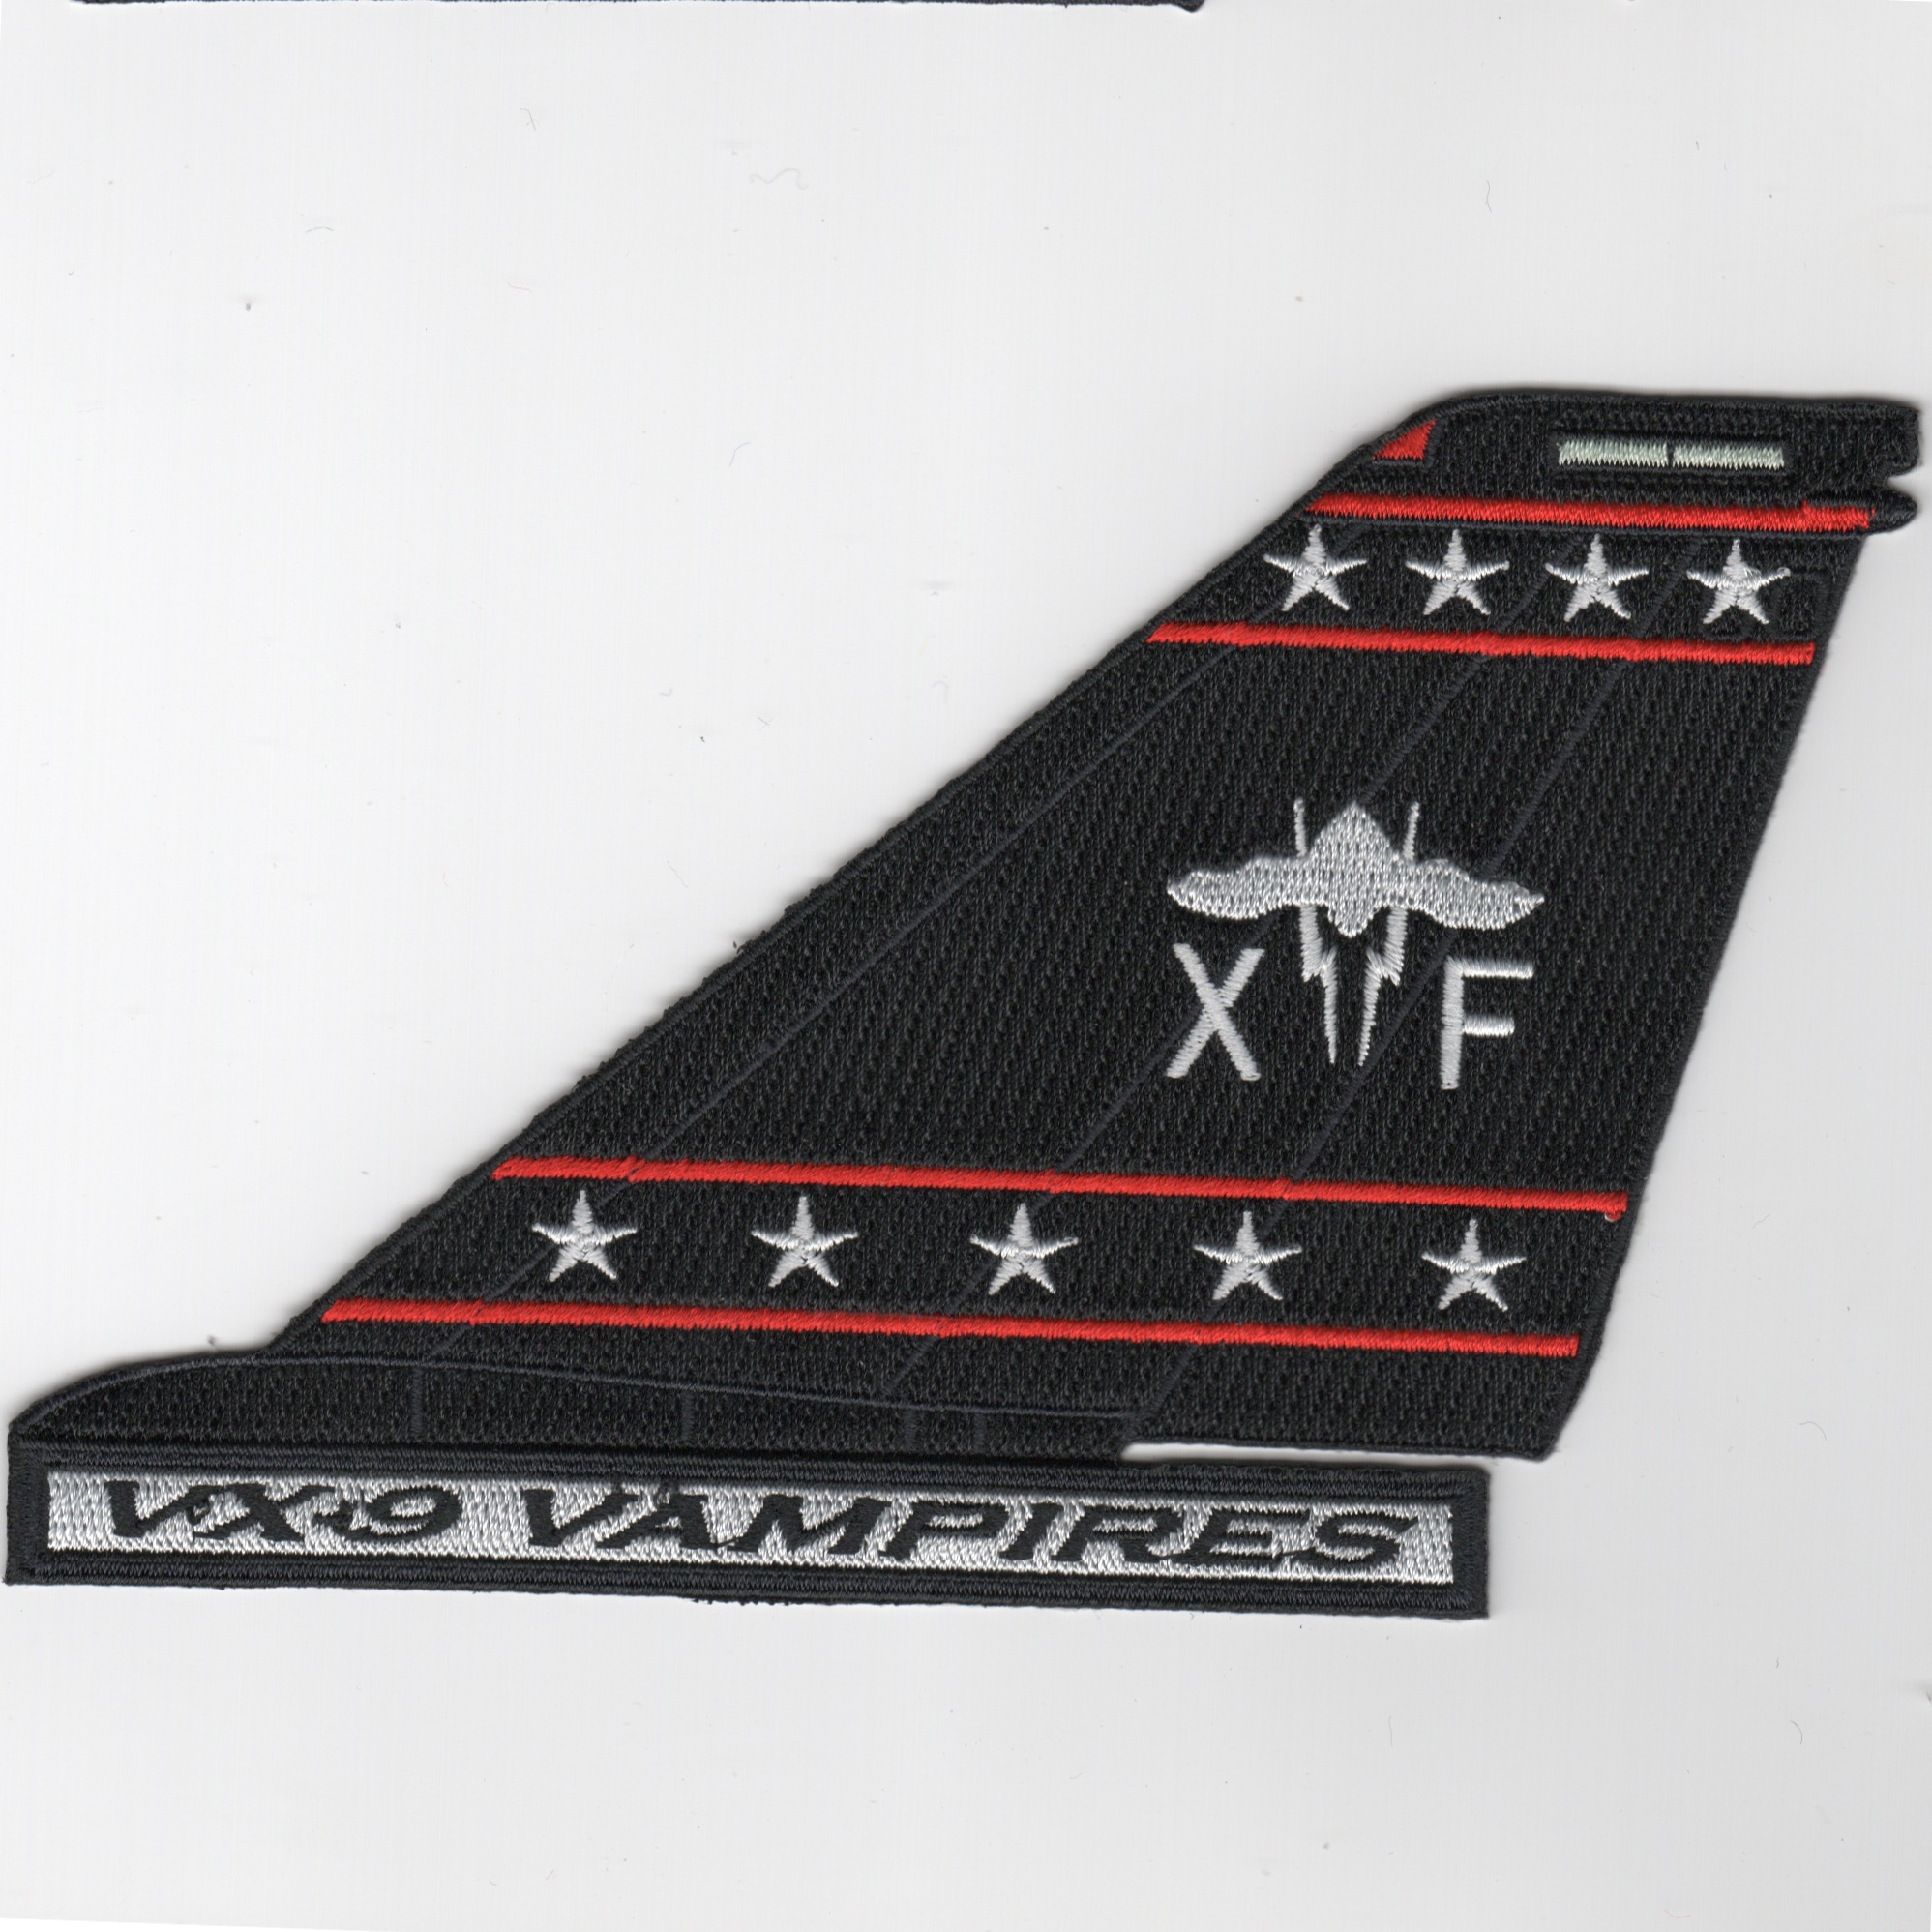 VX-9 'Bat' F-14 Tailfin (Text/Blk)